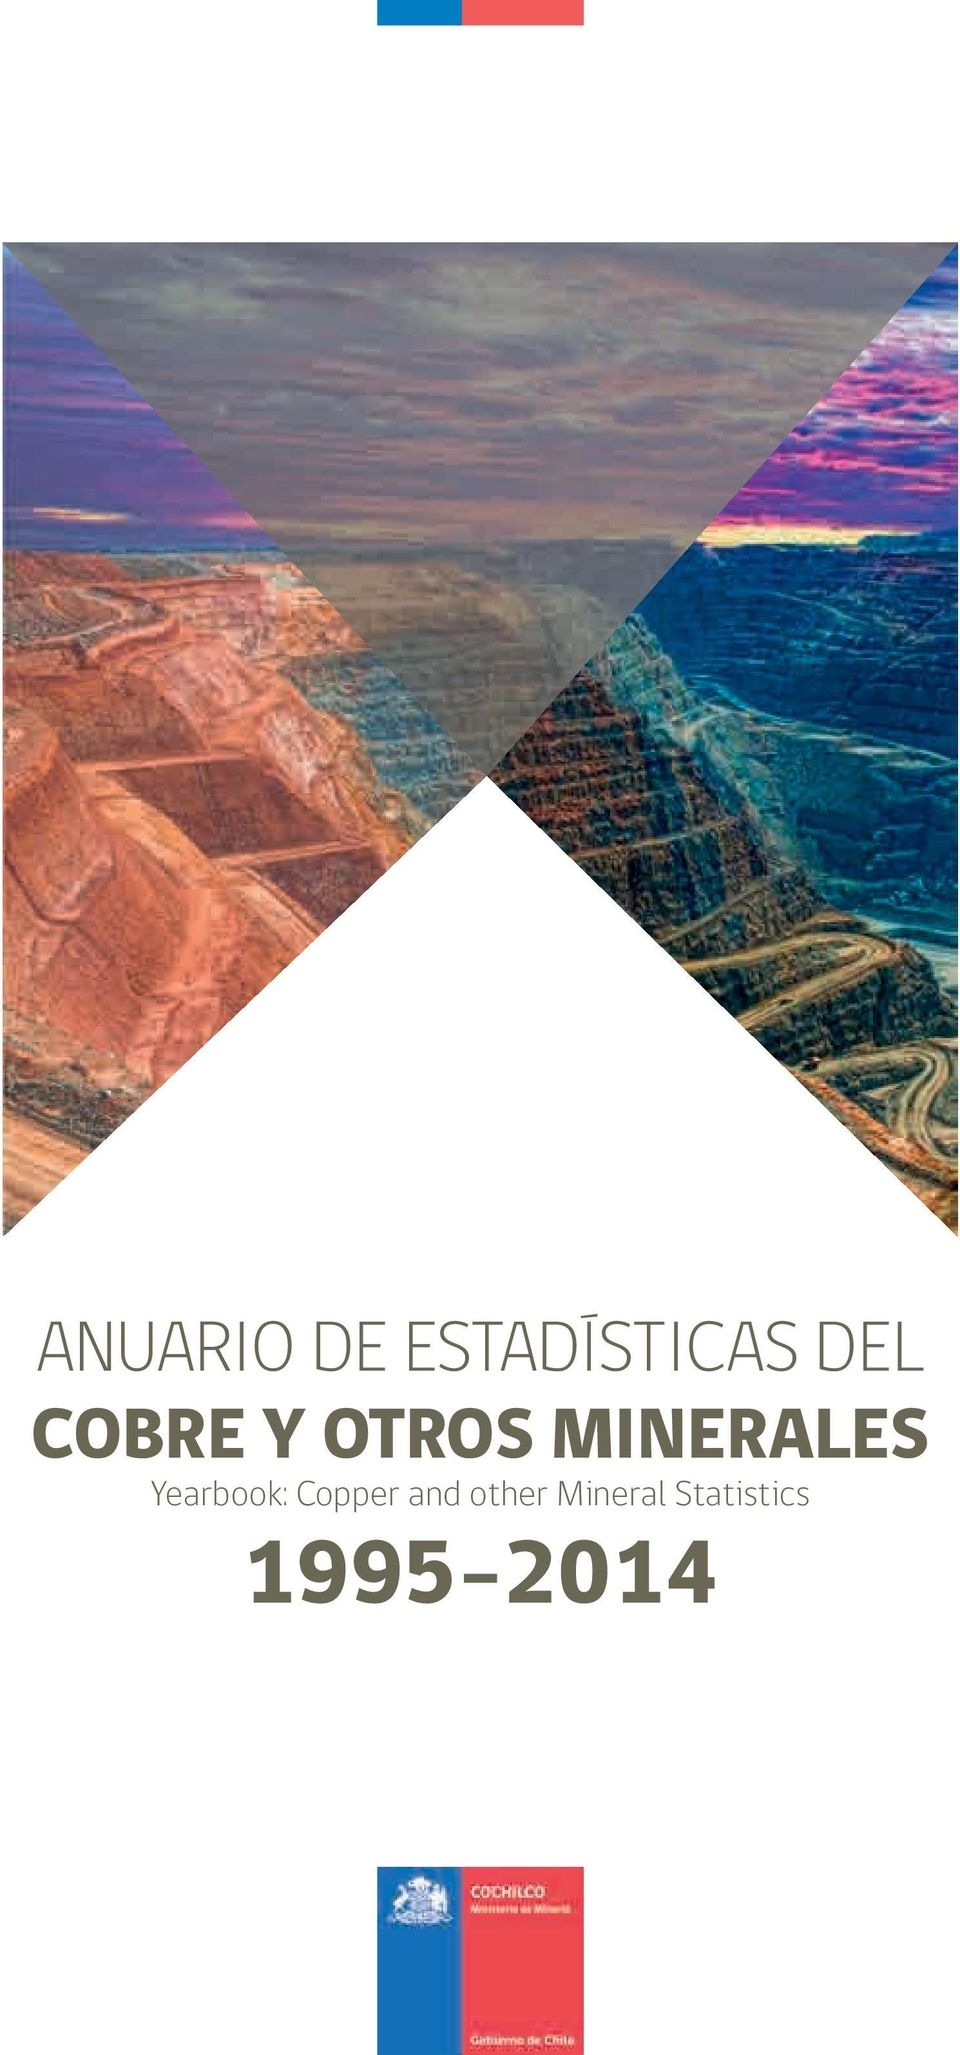 MINERALES Yearbook: Copper